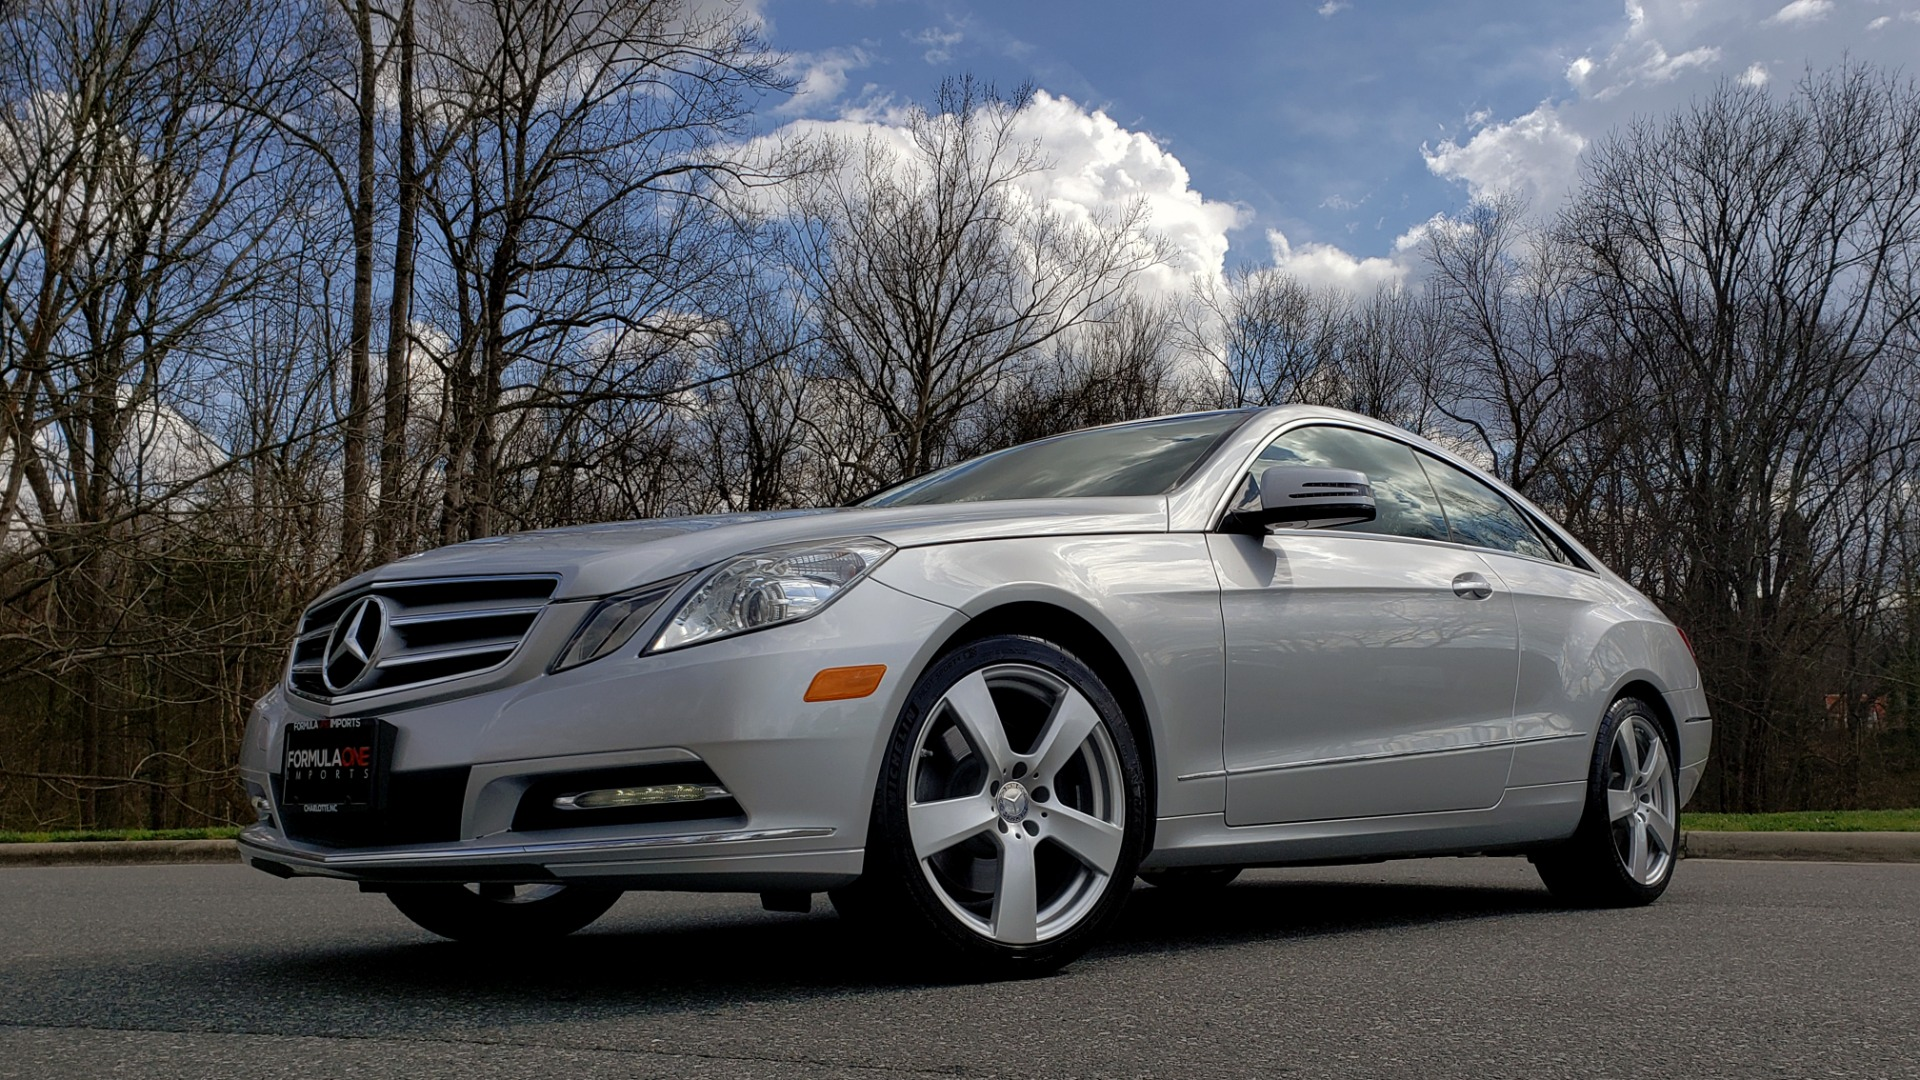 Used 2013 Mercedes-Benz E-CLASS E 350 COUPE PREM / NAV / PANO-ROFF / KEYLESS-GO / REARVIEW for sale Sold at Formula Imports in Charlotte NC 28227 2